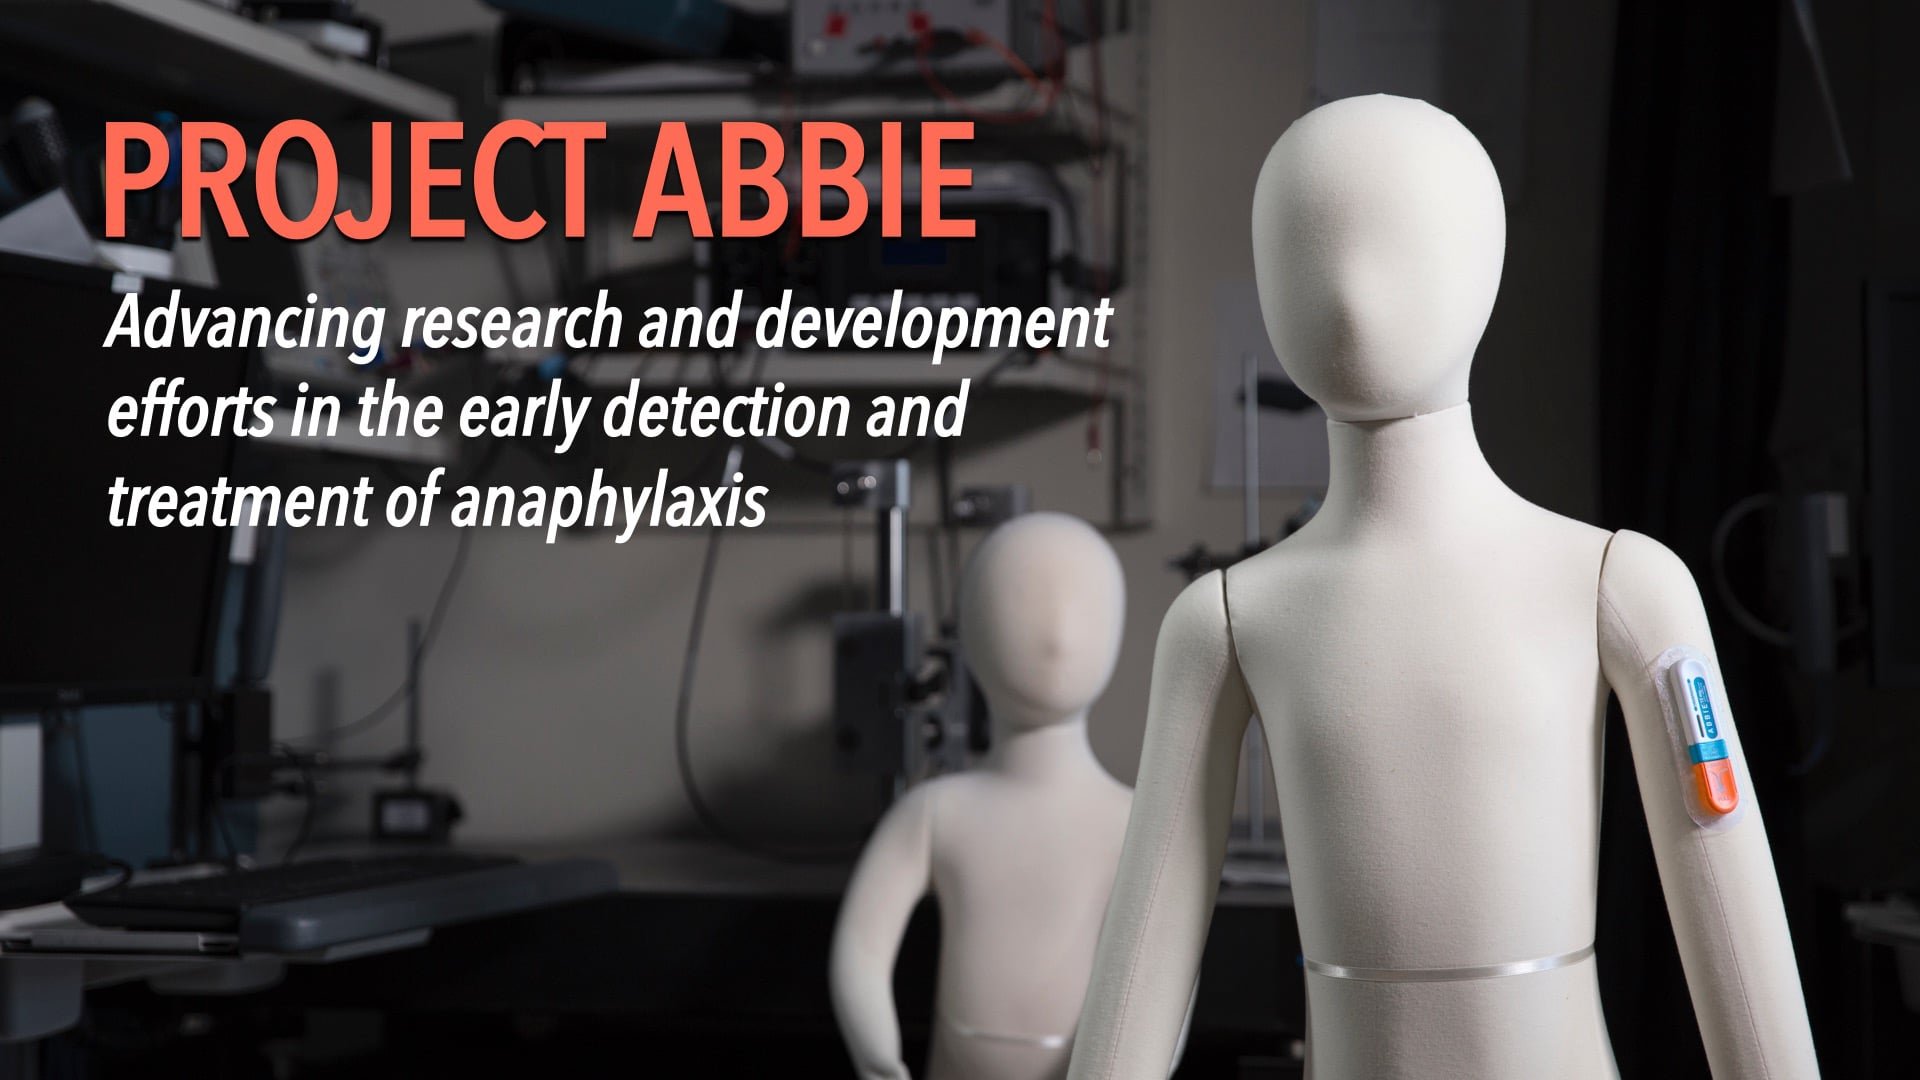 Project Abbie